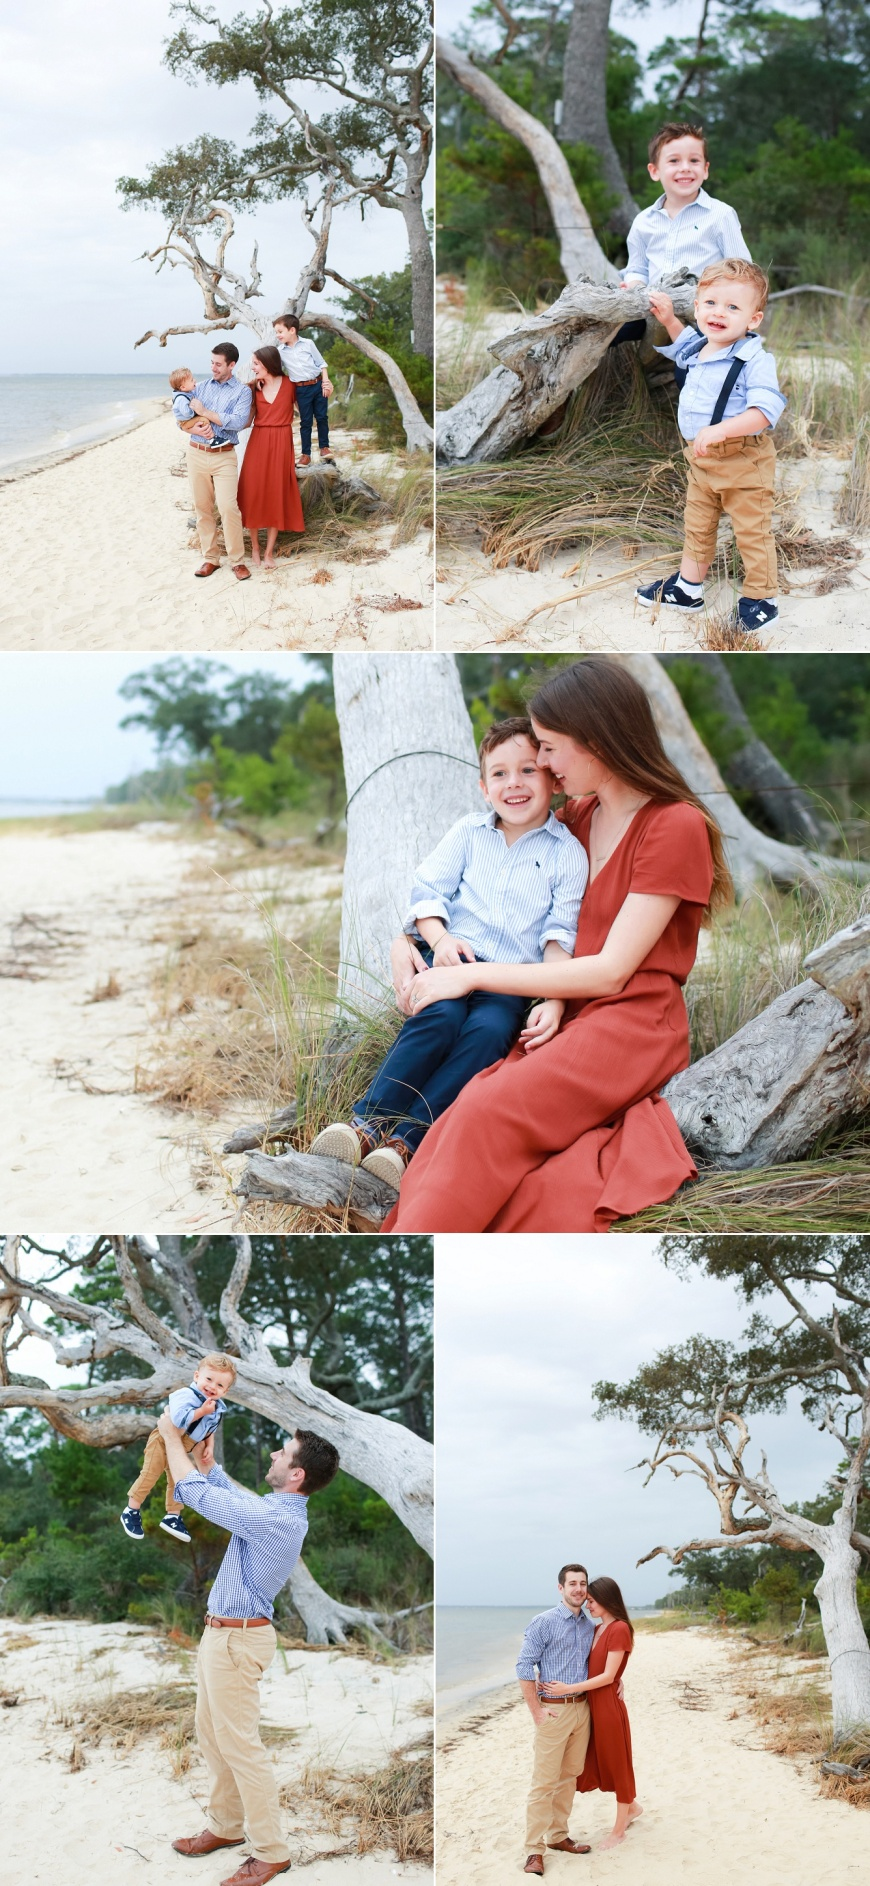 White-Point-Park-Niceville-Florida-Family-Photographer_1019.jpg